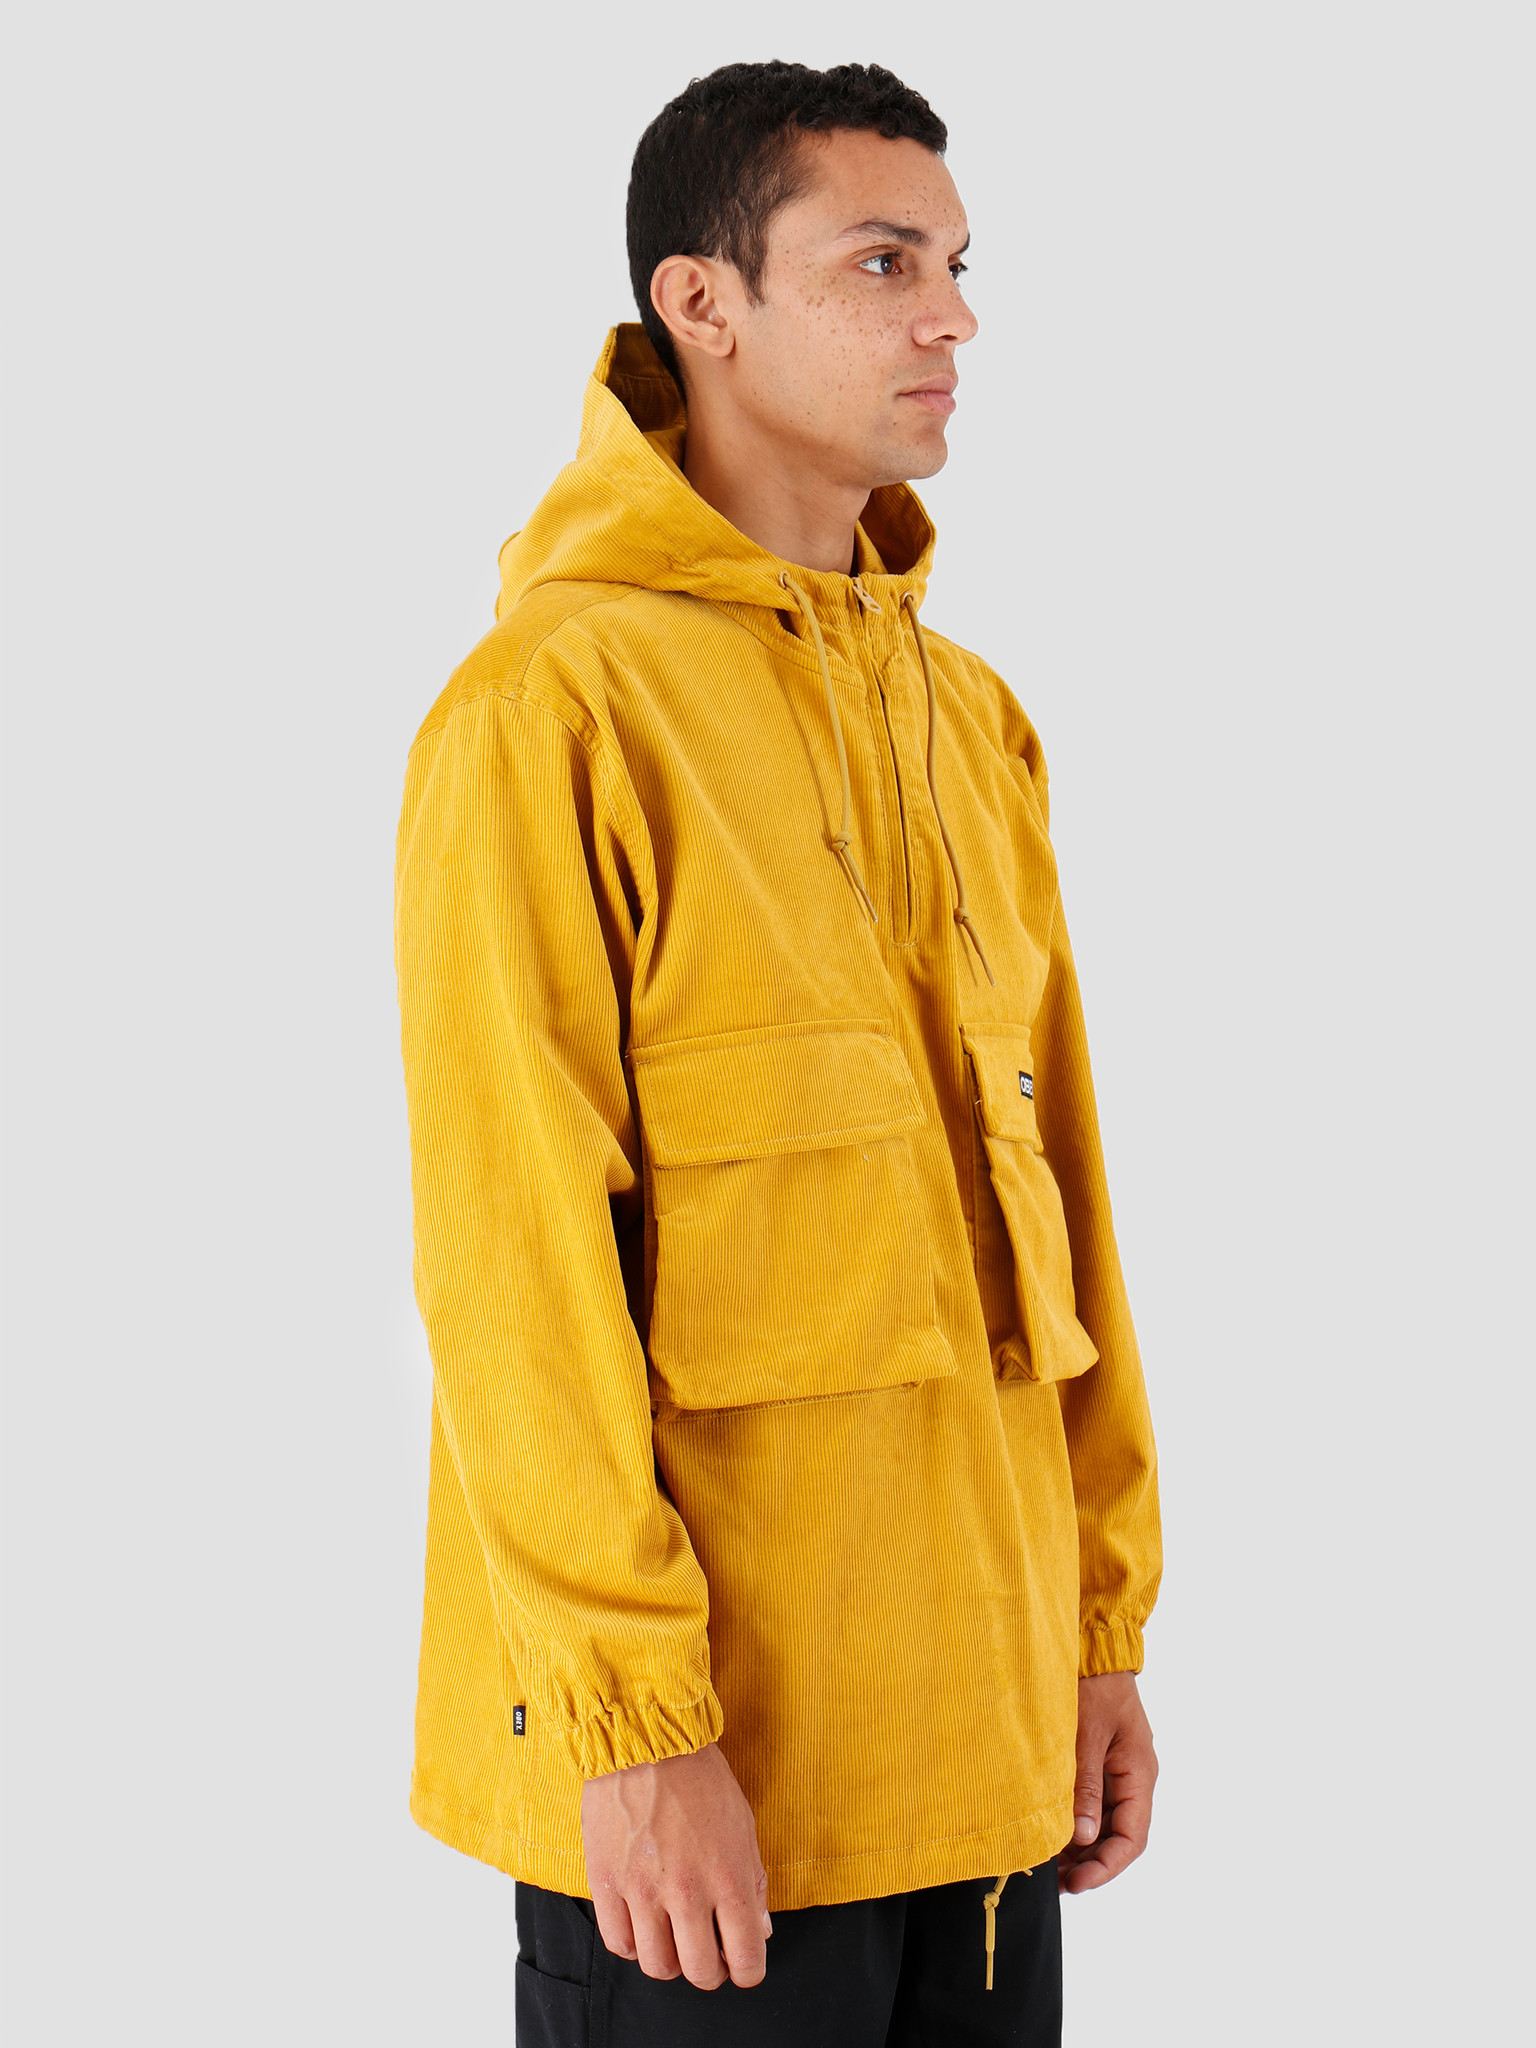 Obey Obey Shiner Anorak Golden Palm 121800390-GPM